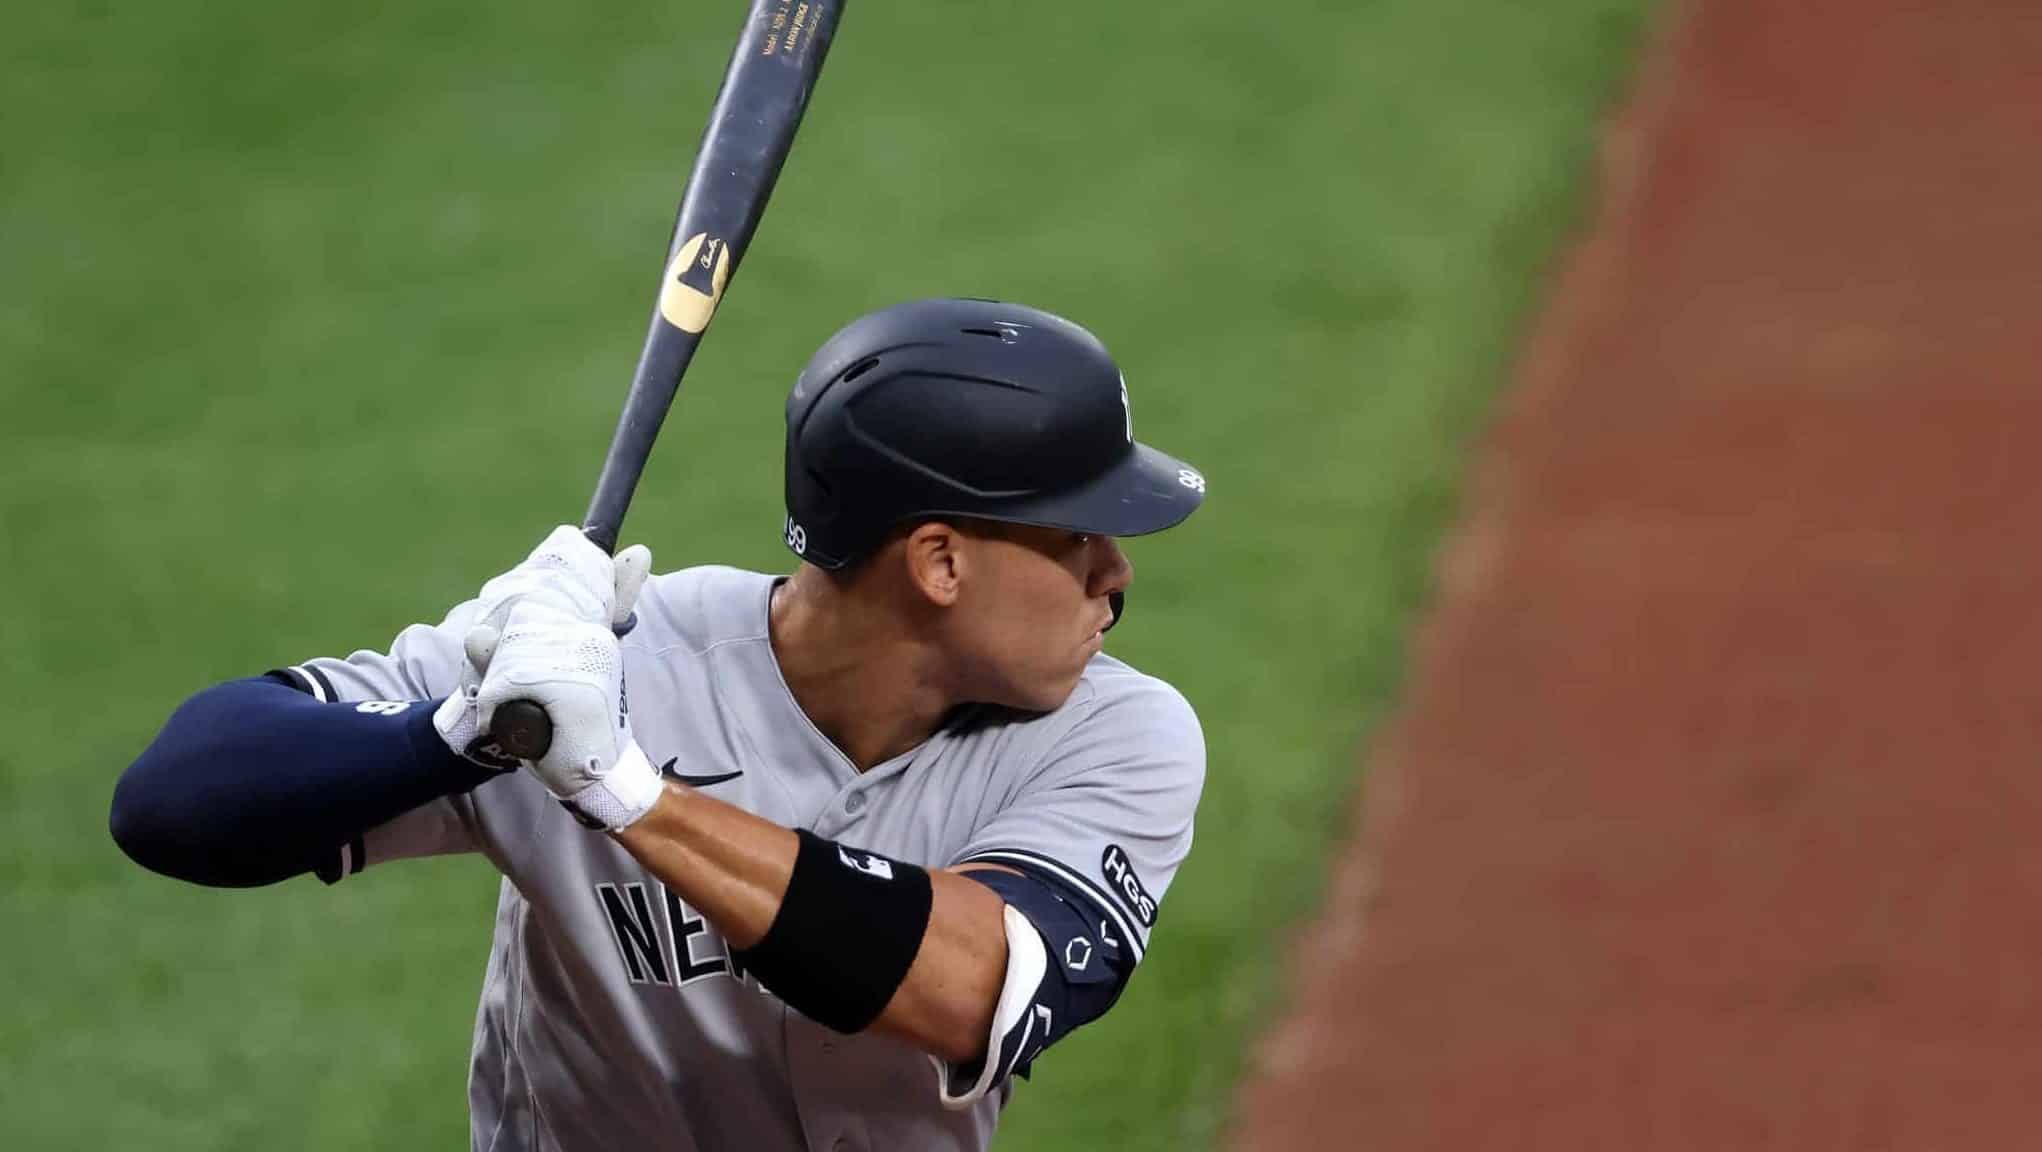 BALTIMORE, MARYLAND - JULY 30: Aaron Judge #99 of the New York Yankees bats against the Baltimore Orioles in the ninth inning at Oriole Park at Camden Yards on July 30, 2020 in Baltimore, Maryland.